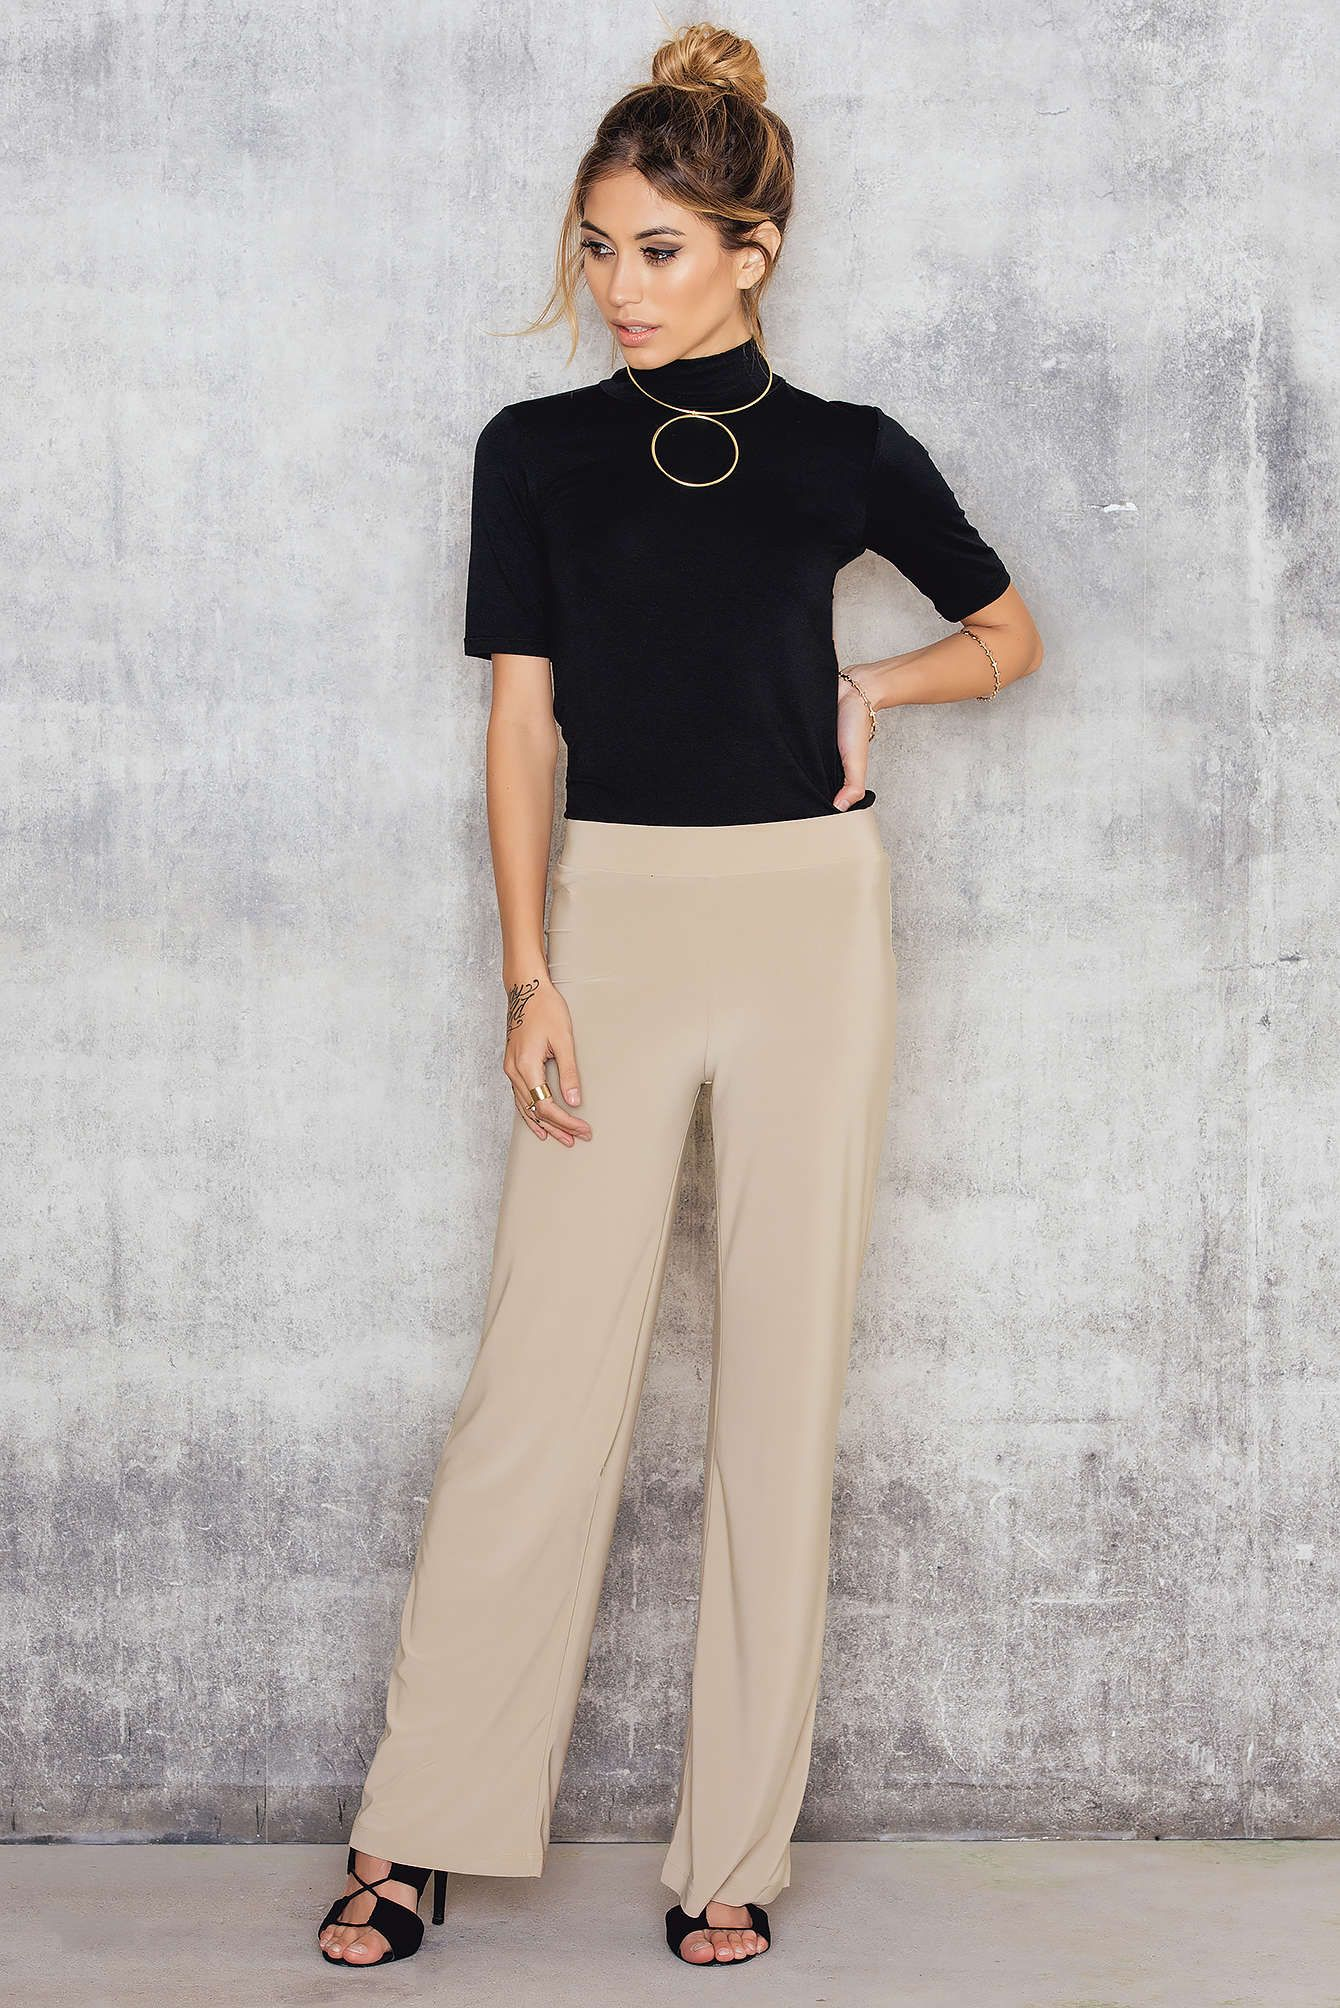 f74ed591 The perfect pants inbetween classy and comfy! The Gro Pants by Sisters Point,  comes in camel and features an elastic waist and wide legs.